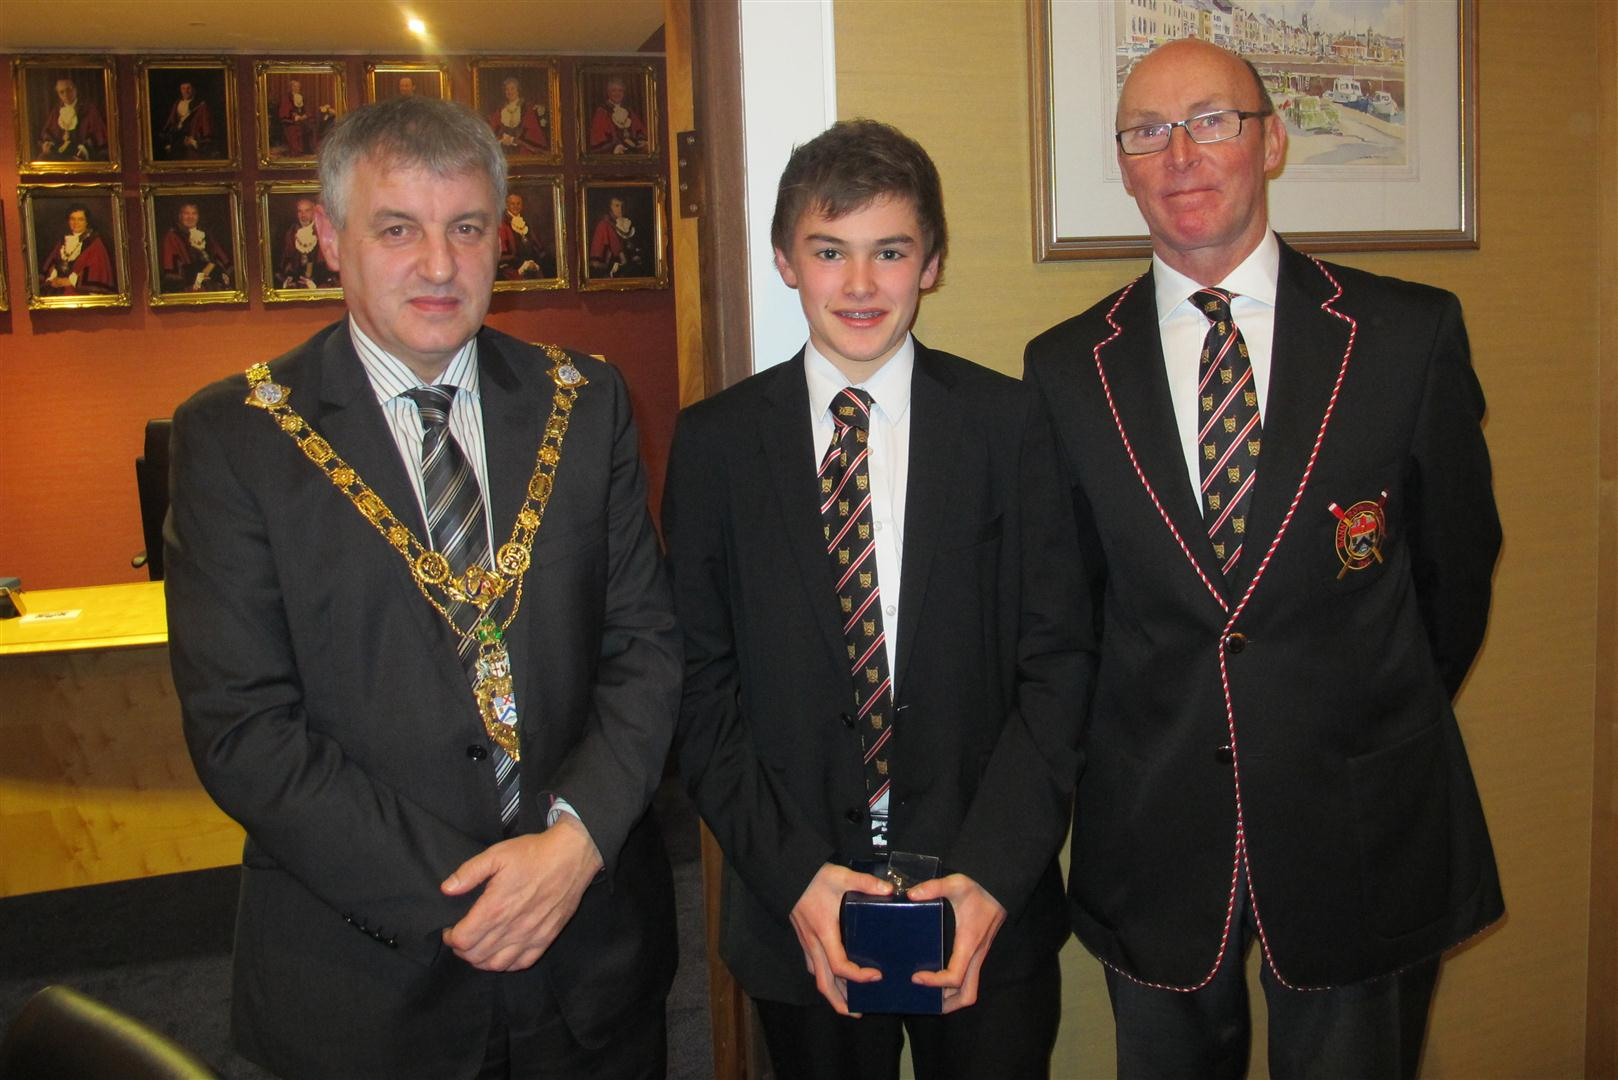 The Mayor, Club Captain and Jack